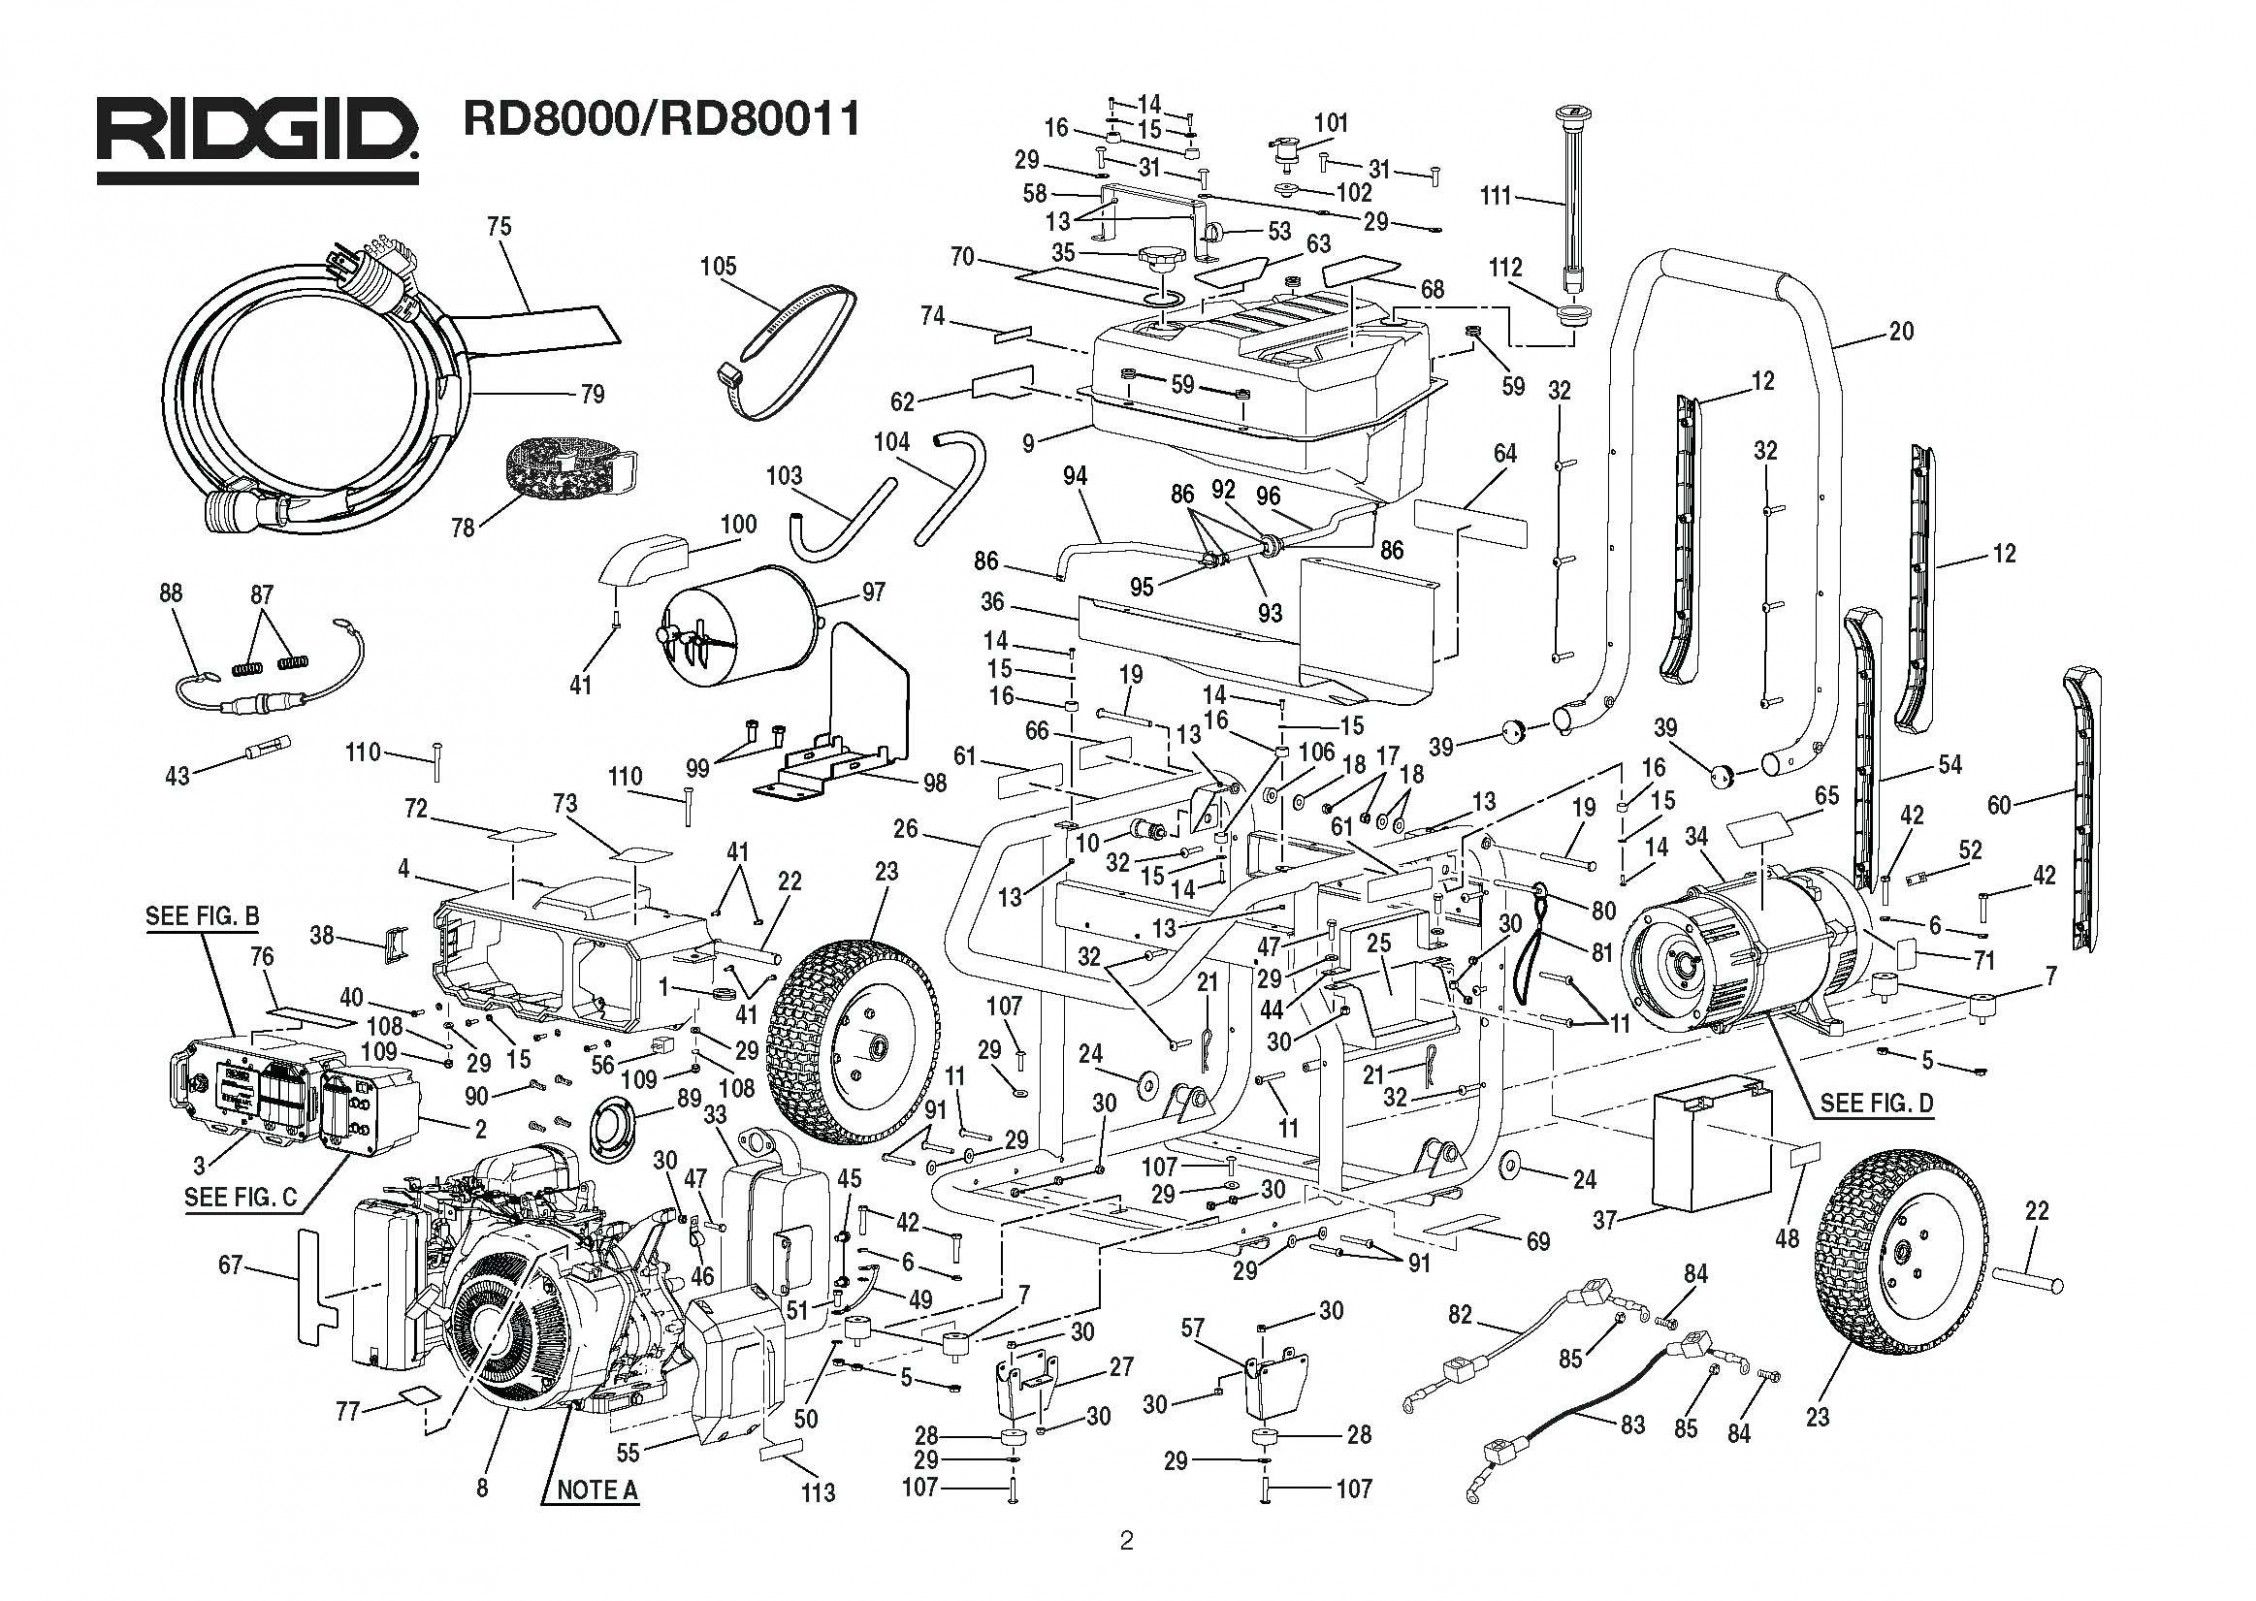 5 Subaru Sti Engine Diagram in 2020 | Subaru outback, Diagram, Subaru